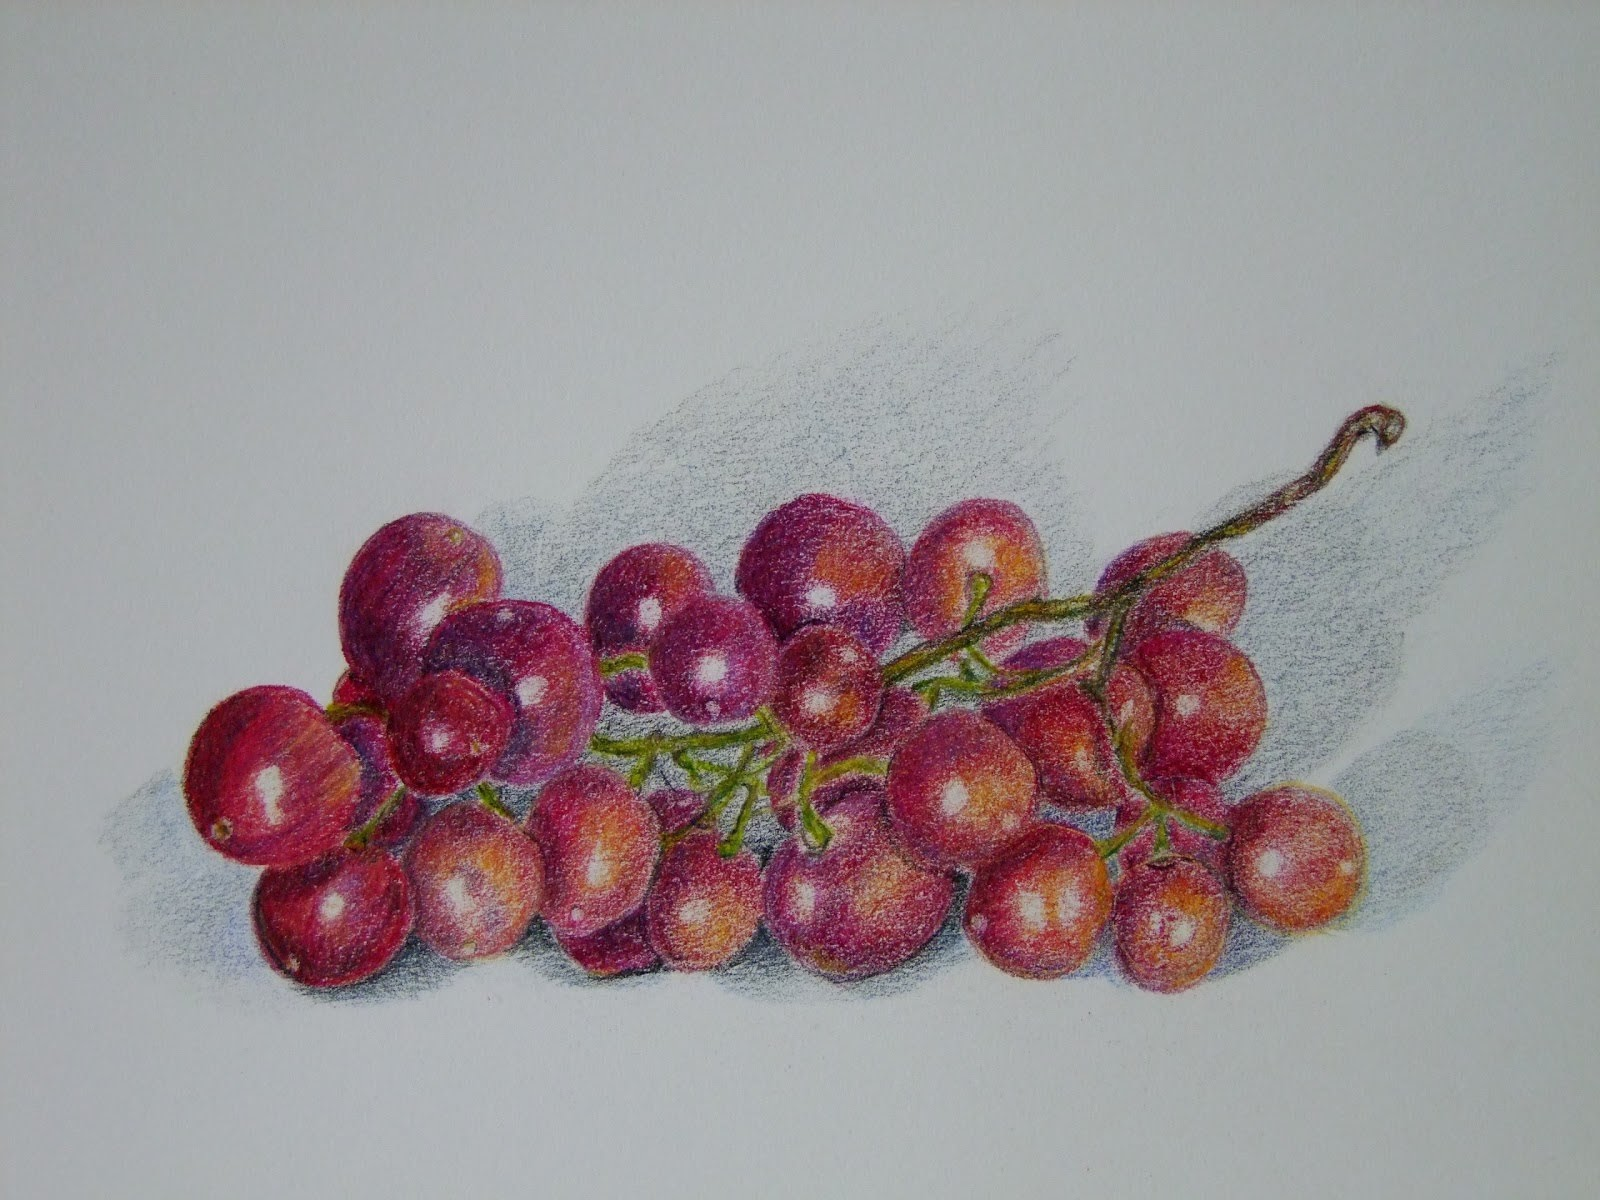 My artbox red grapes colored pencil study on 9x12 canson drawing